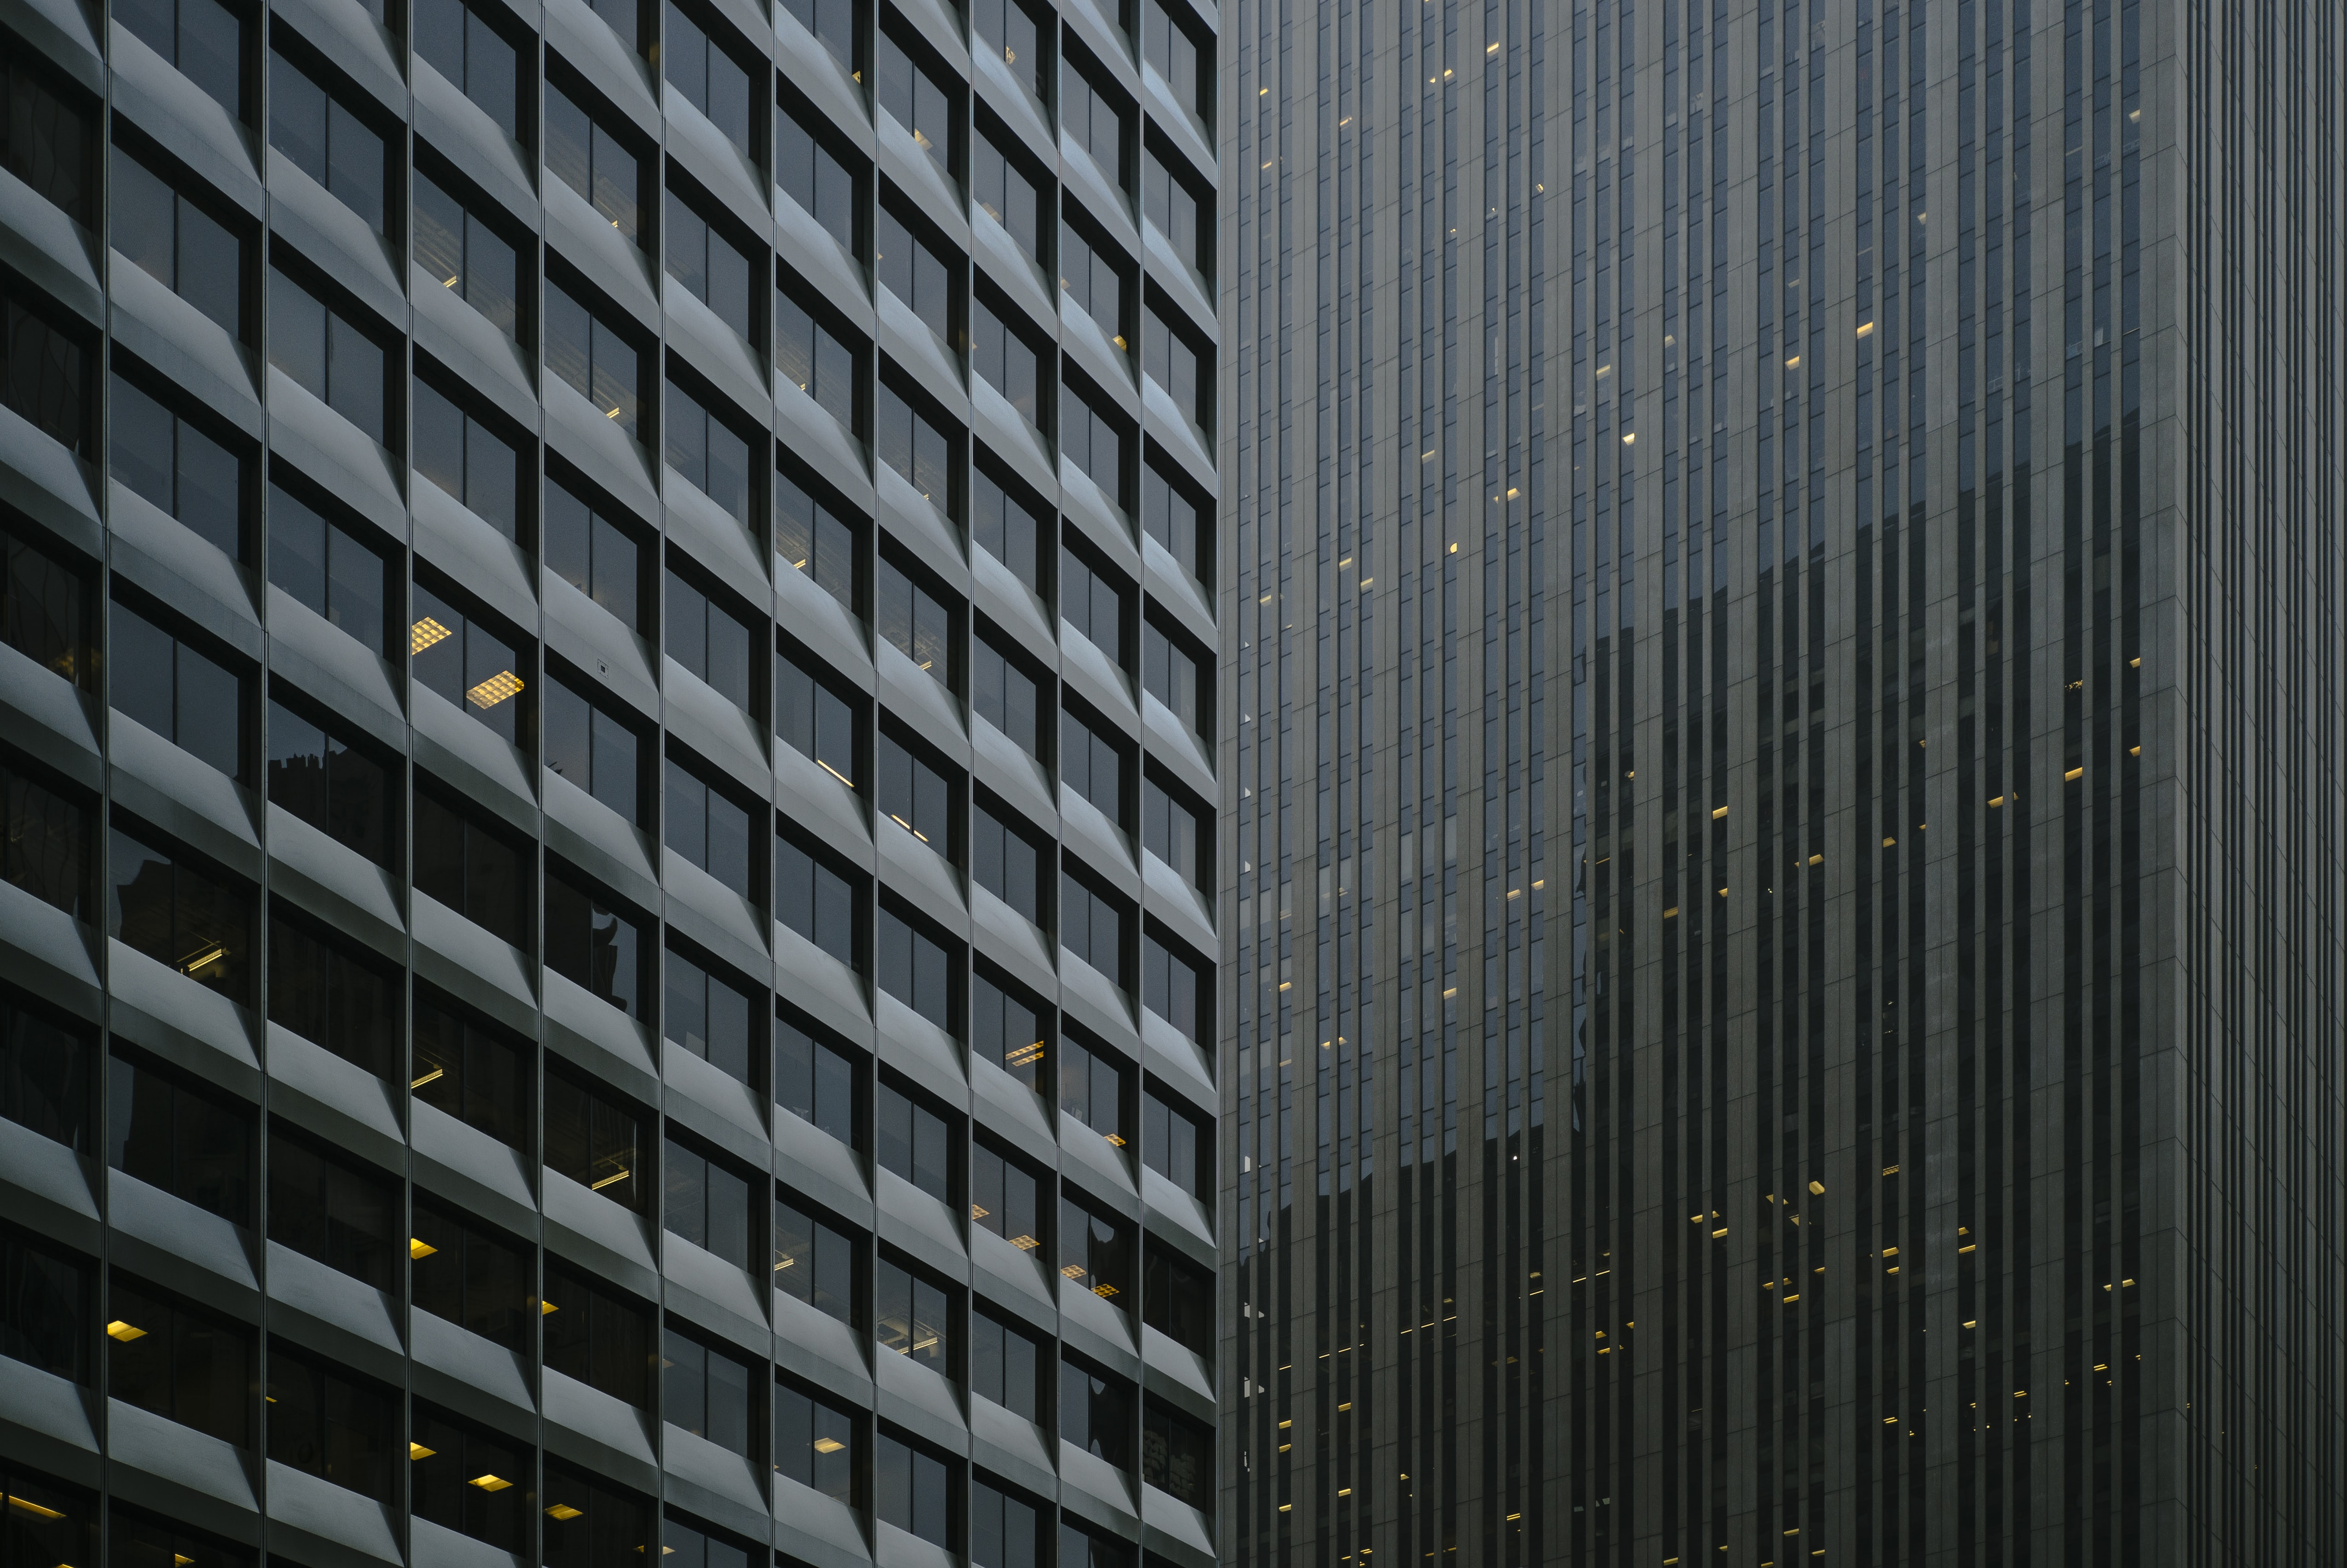 architectural photography of glass curtain buildings